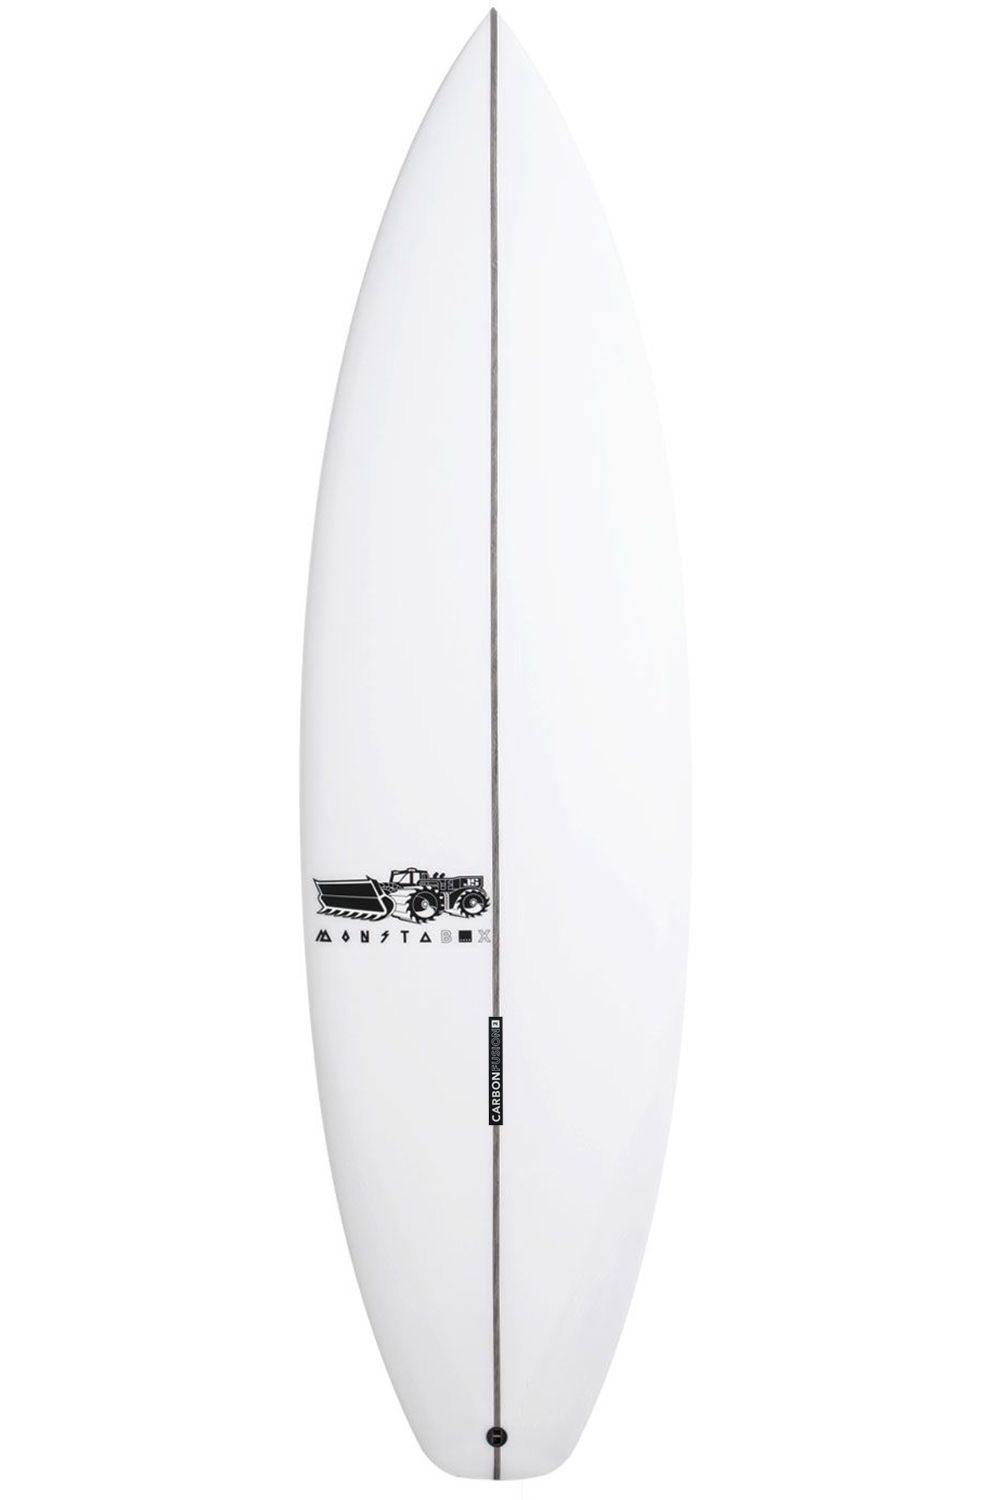 JS Surf Board 5'5 MONSTA BOX 2020 YOUTH PE Squash Tail - White FCS II 5ft5